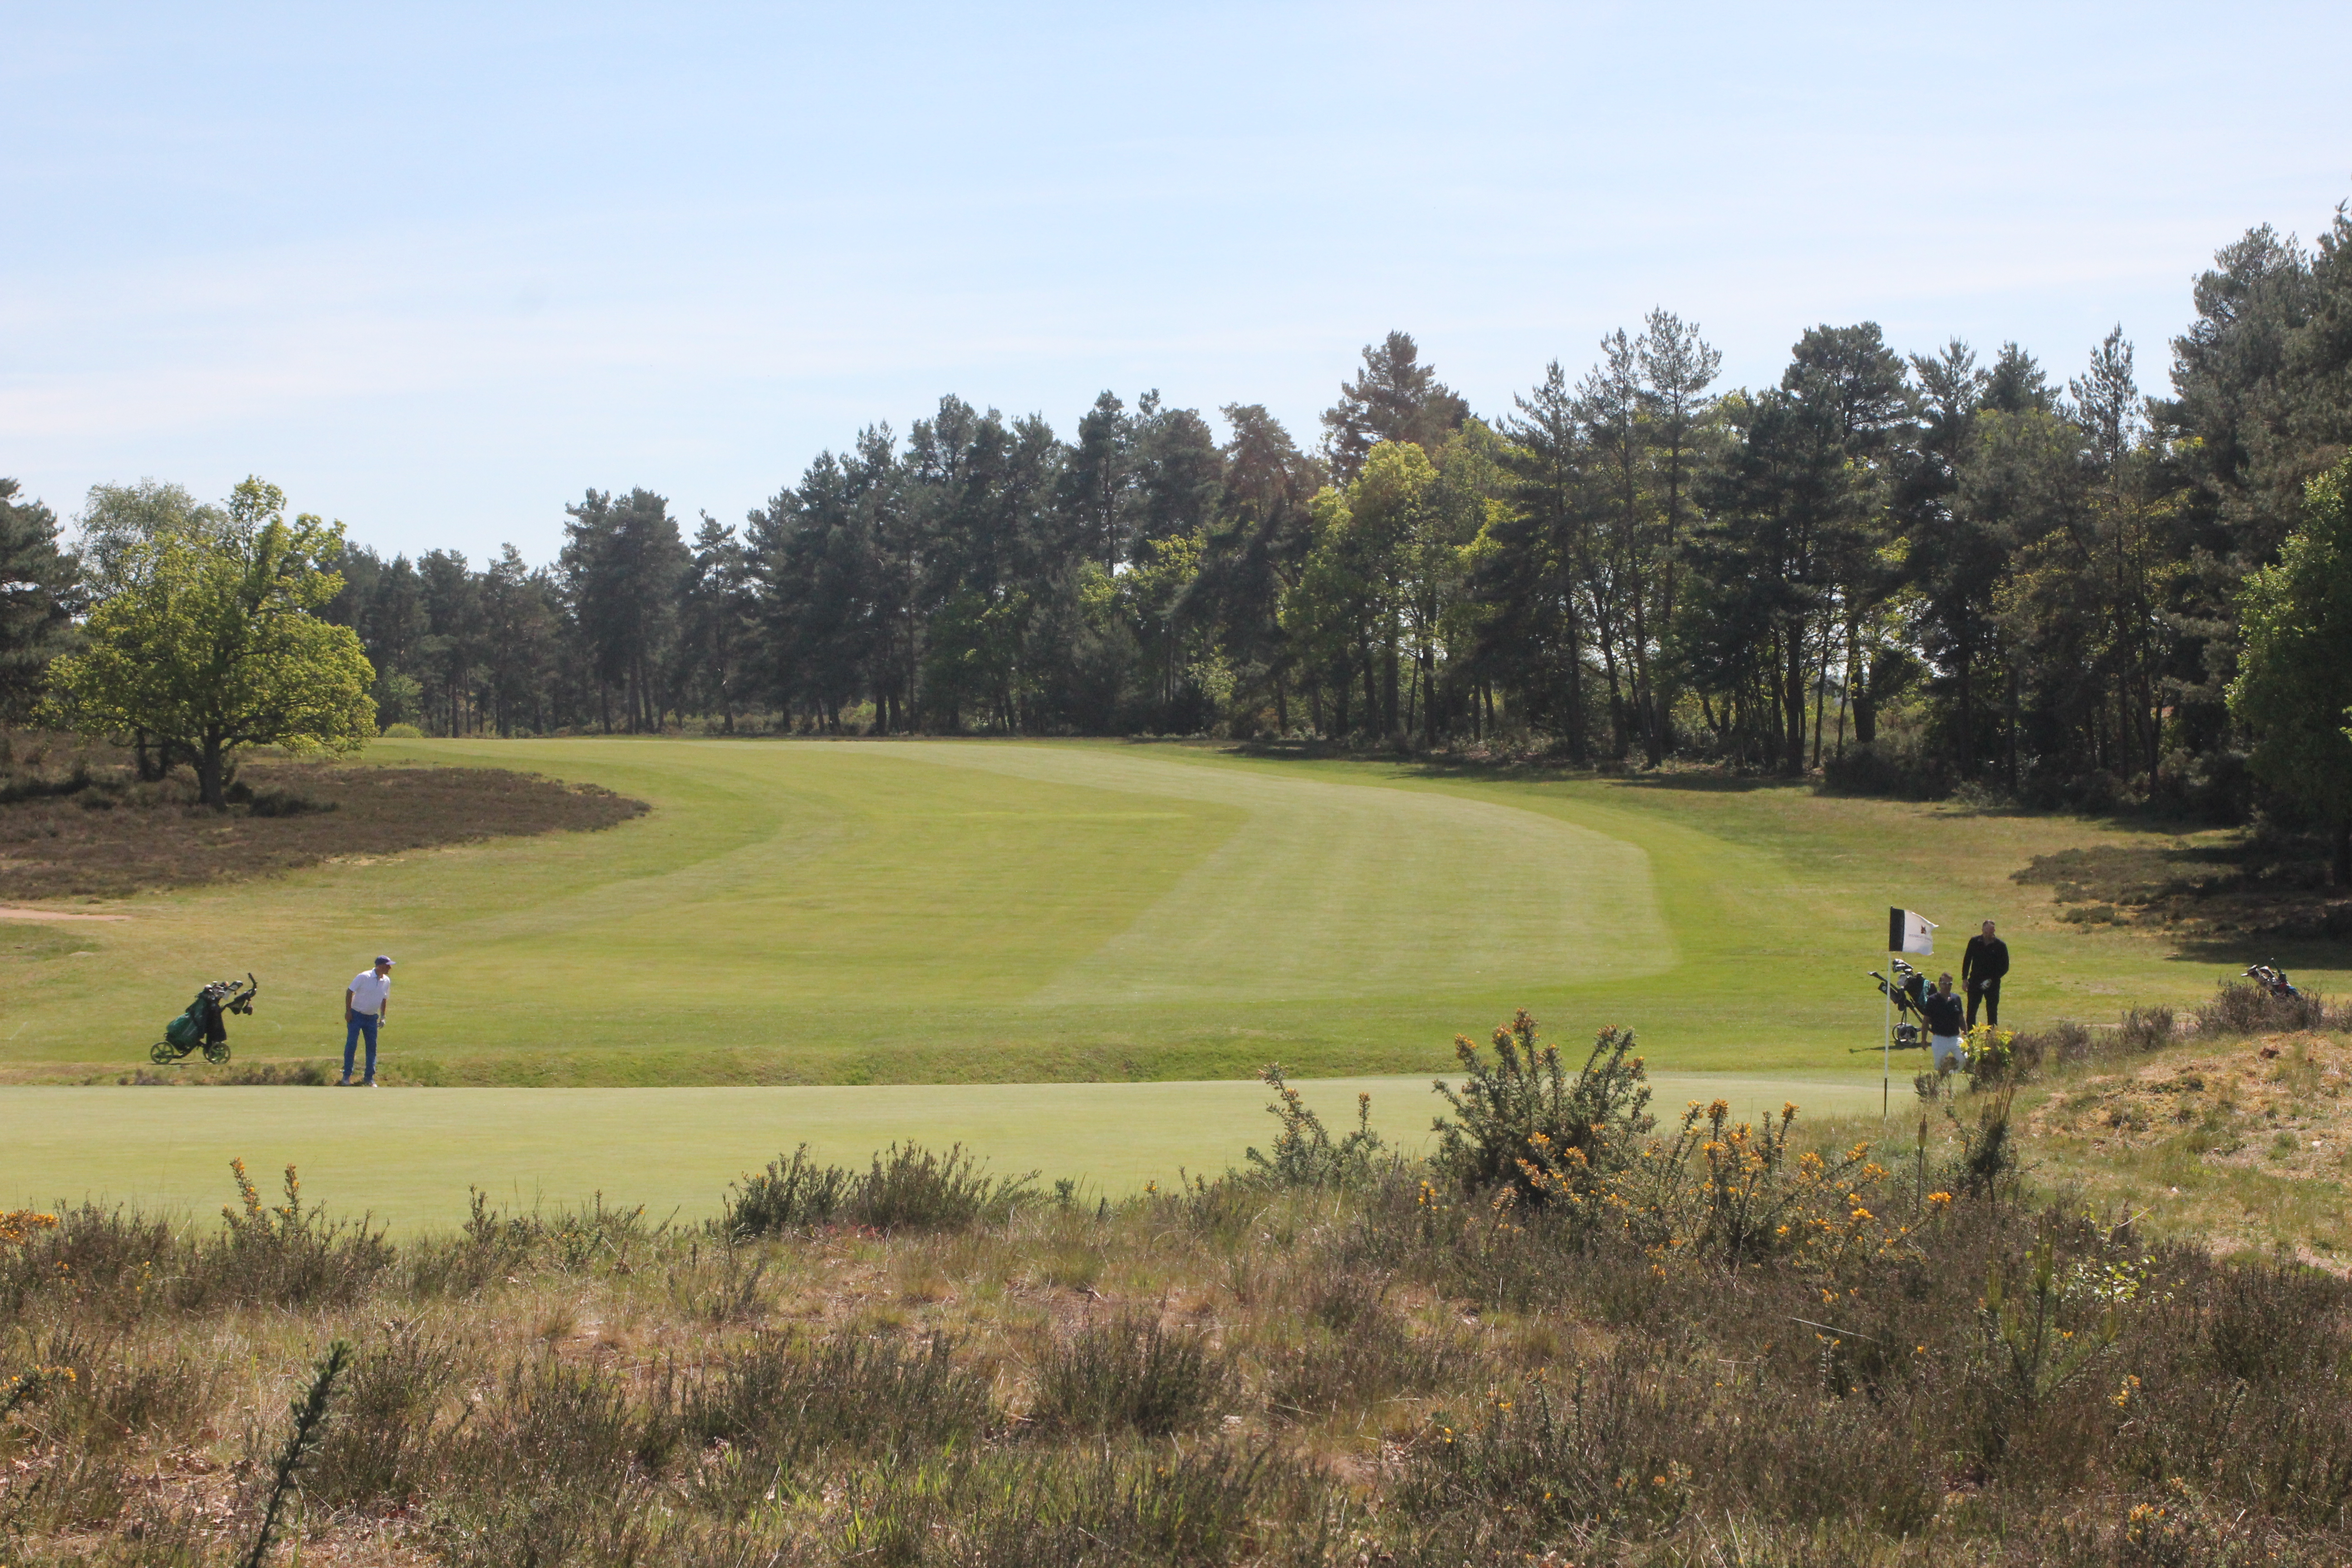 Another great day at Hankley Common GC